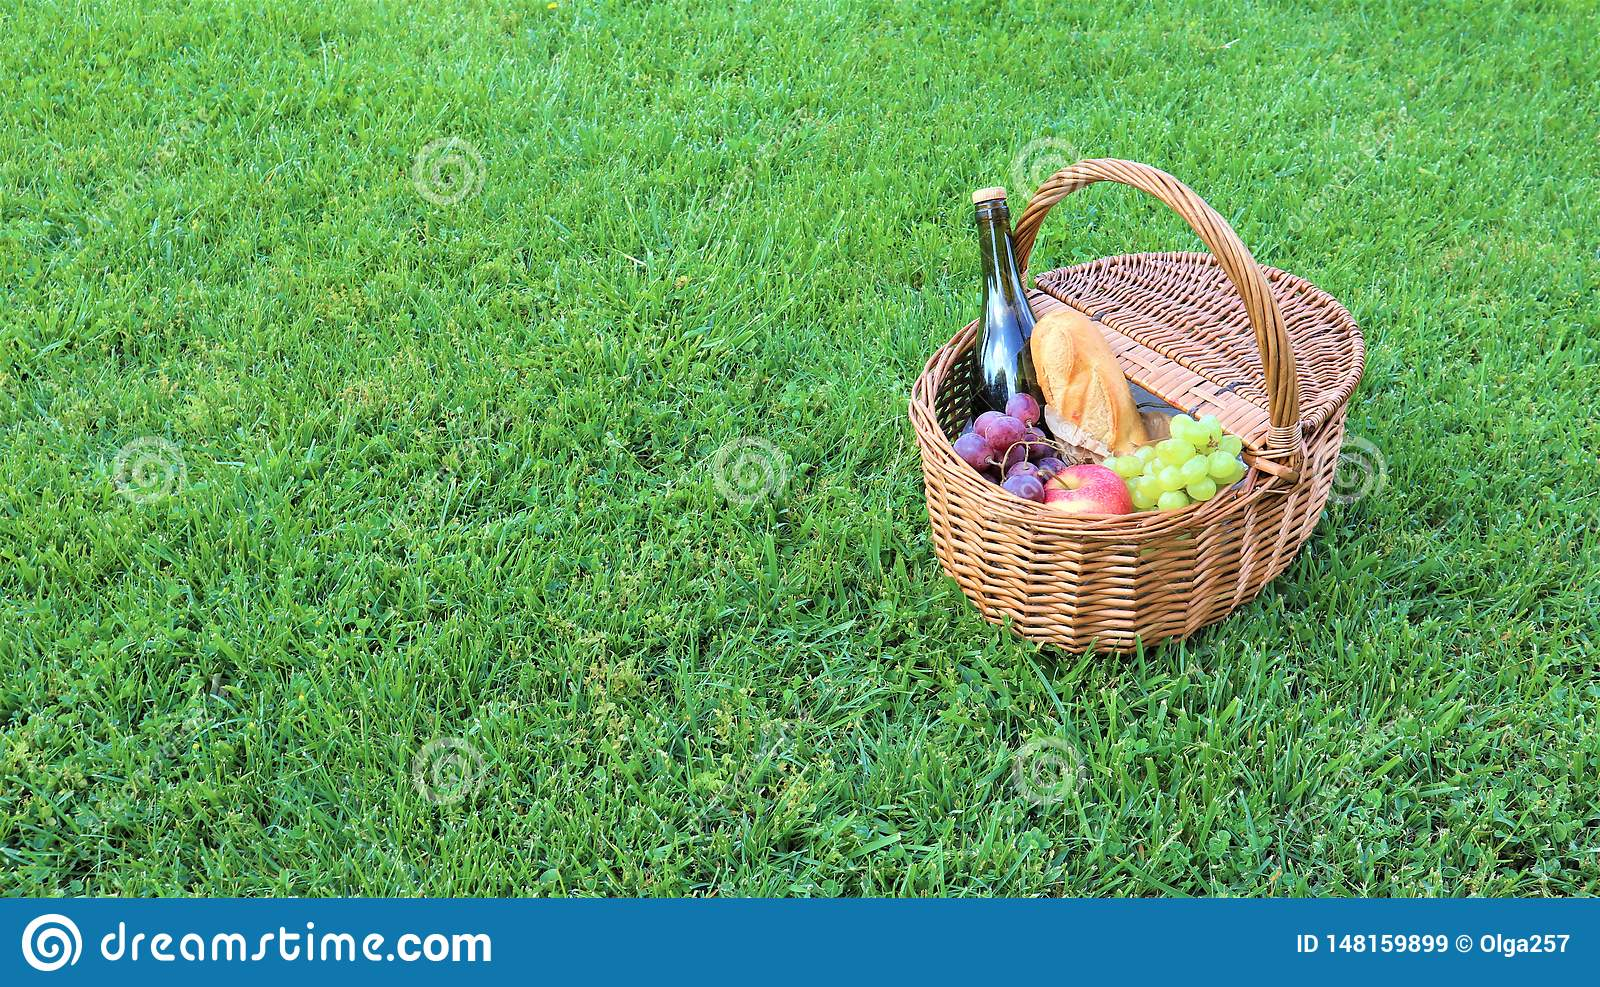 Outdoor Picnic At Sunny Day Stock Image - Image of green ...